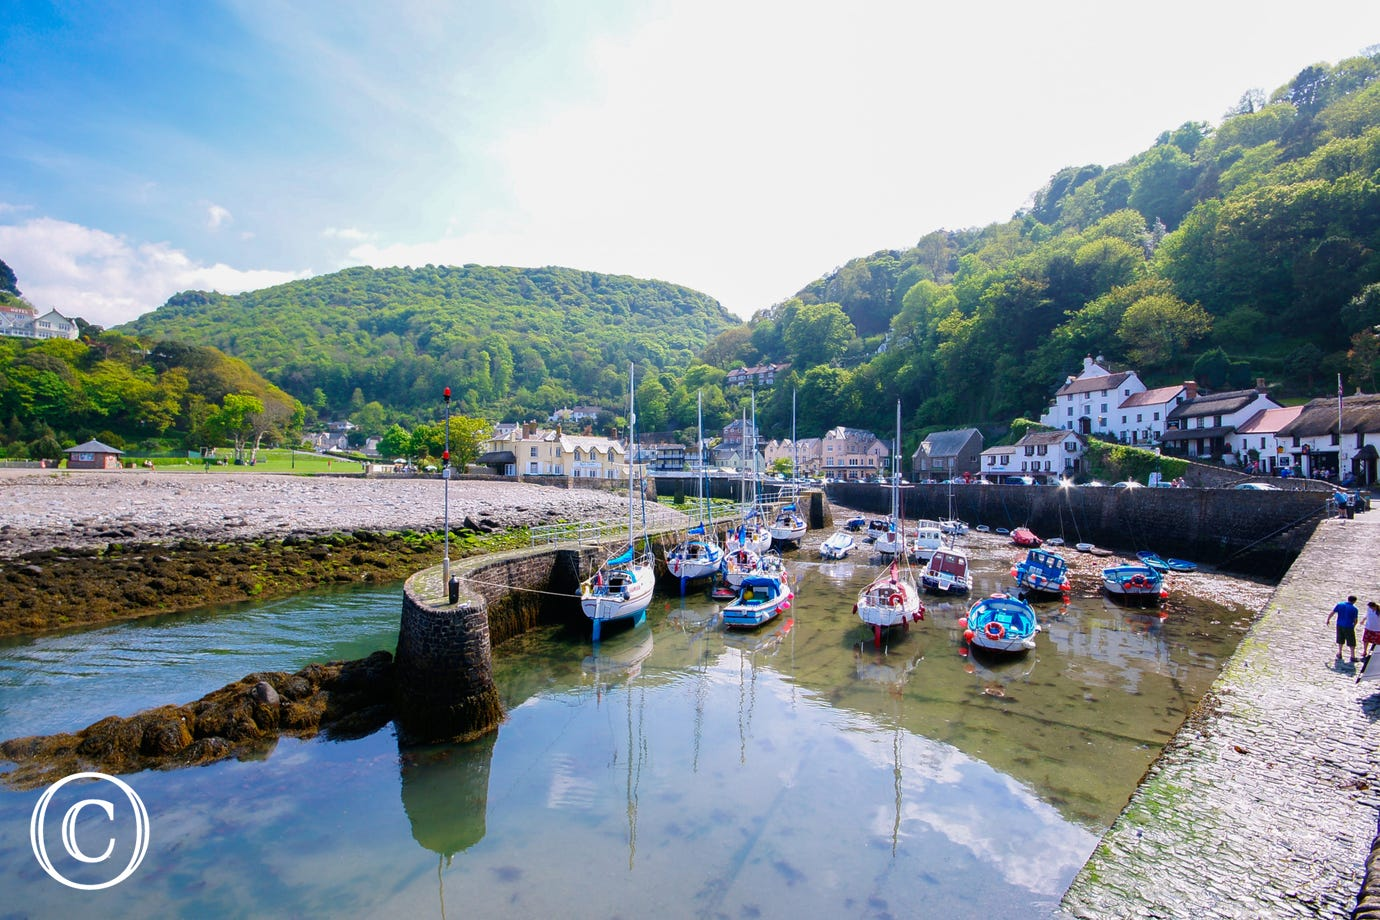 The pretty harbour village of Lynmouth is a short drive away and well worth a visit